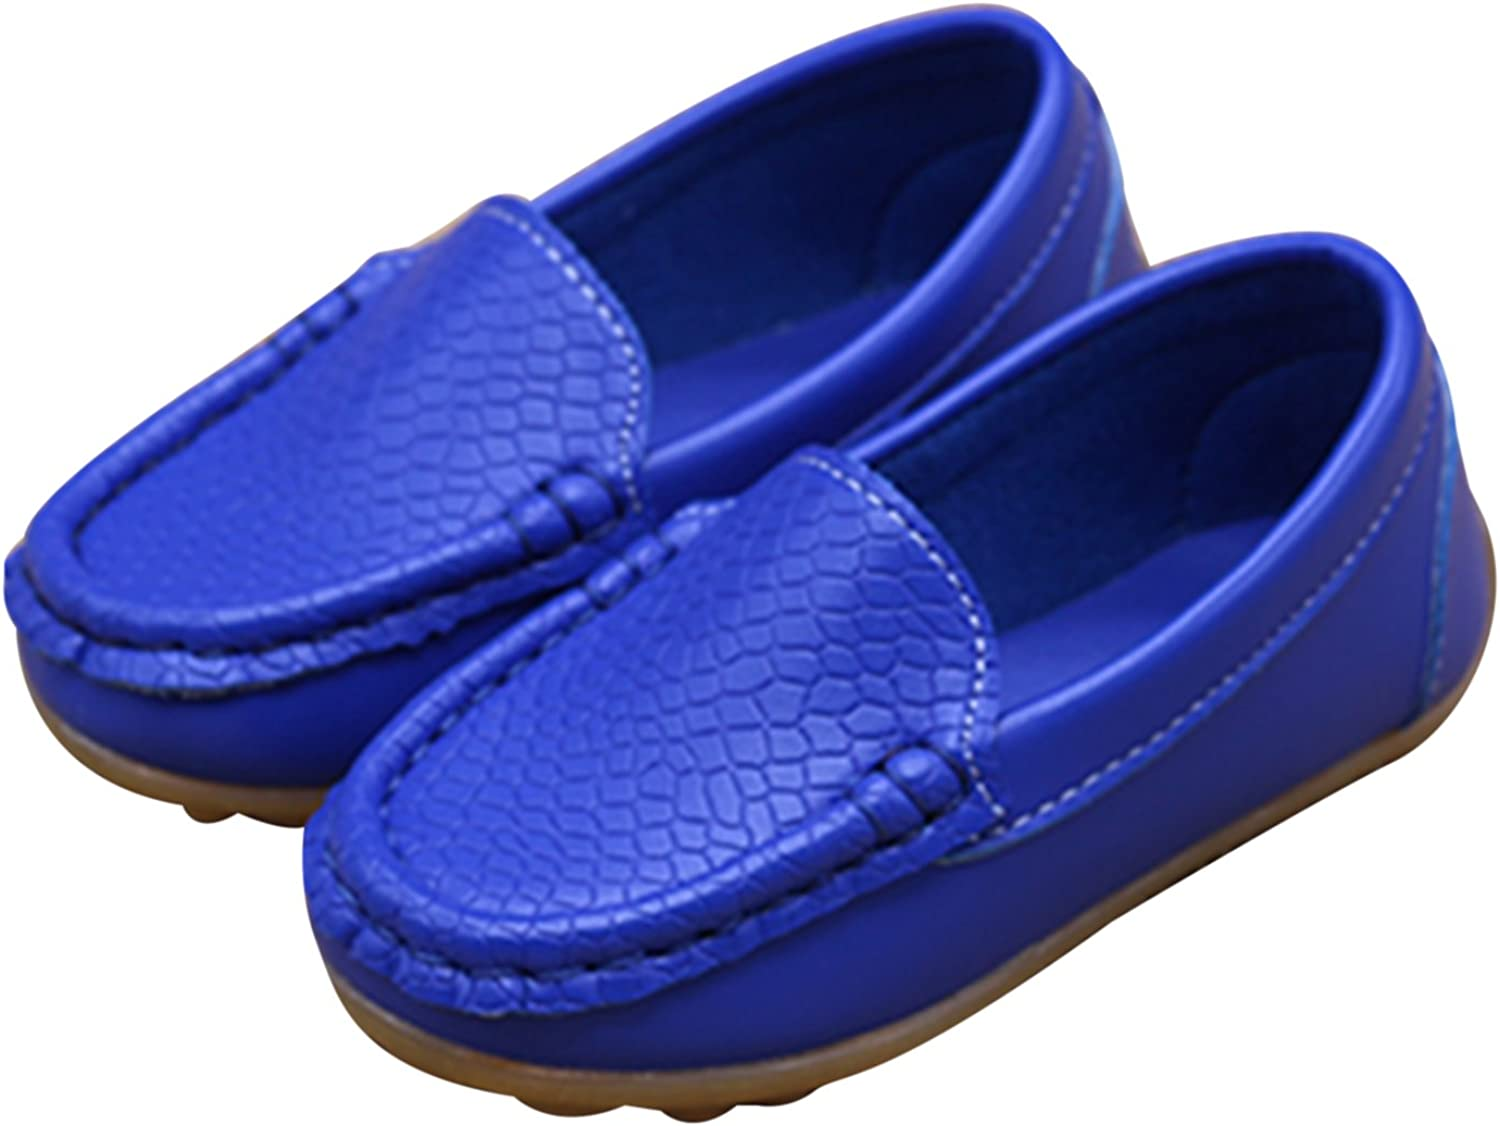 Soft Leather Comfort Loafers Shoes Durable For Toddlers,Blue,Toddler 9 M Little Kids Frosted Leather Sneakers,Slip-on Boat-Dress Baby Shoes